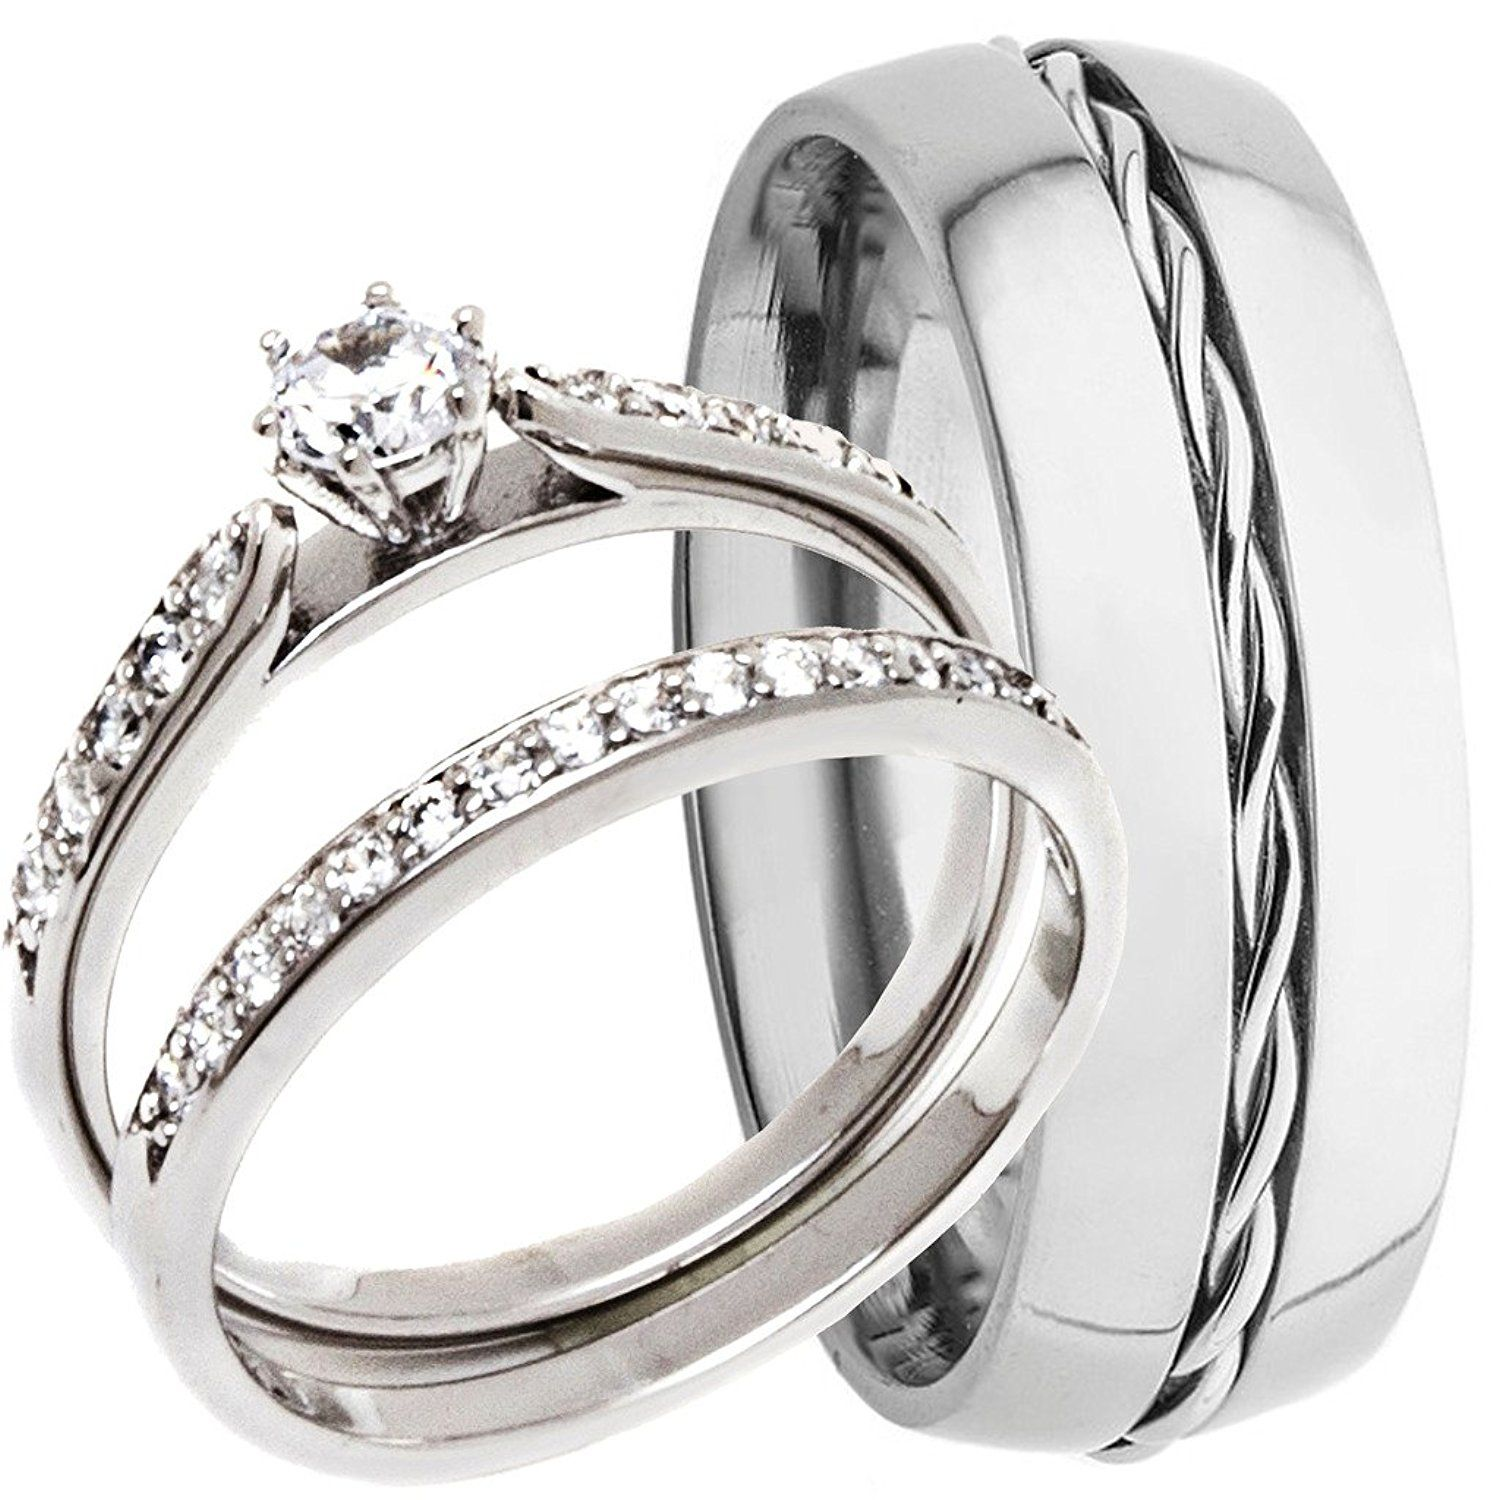 3 Pieces Men's and Women's, His and Hers, 925 Genuine